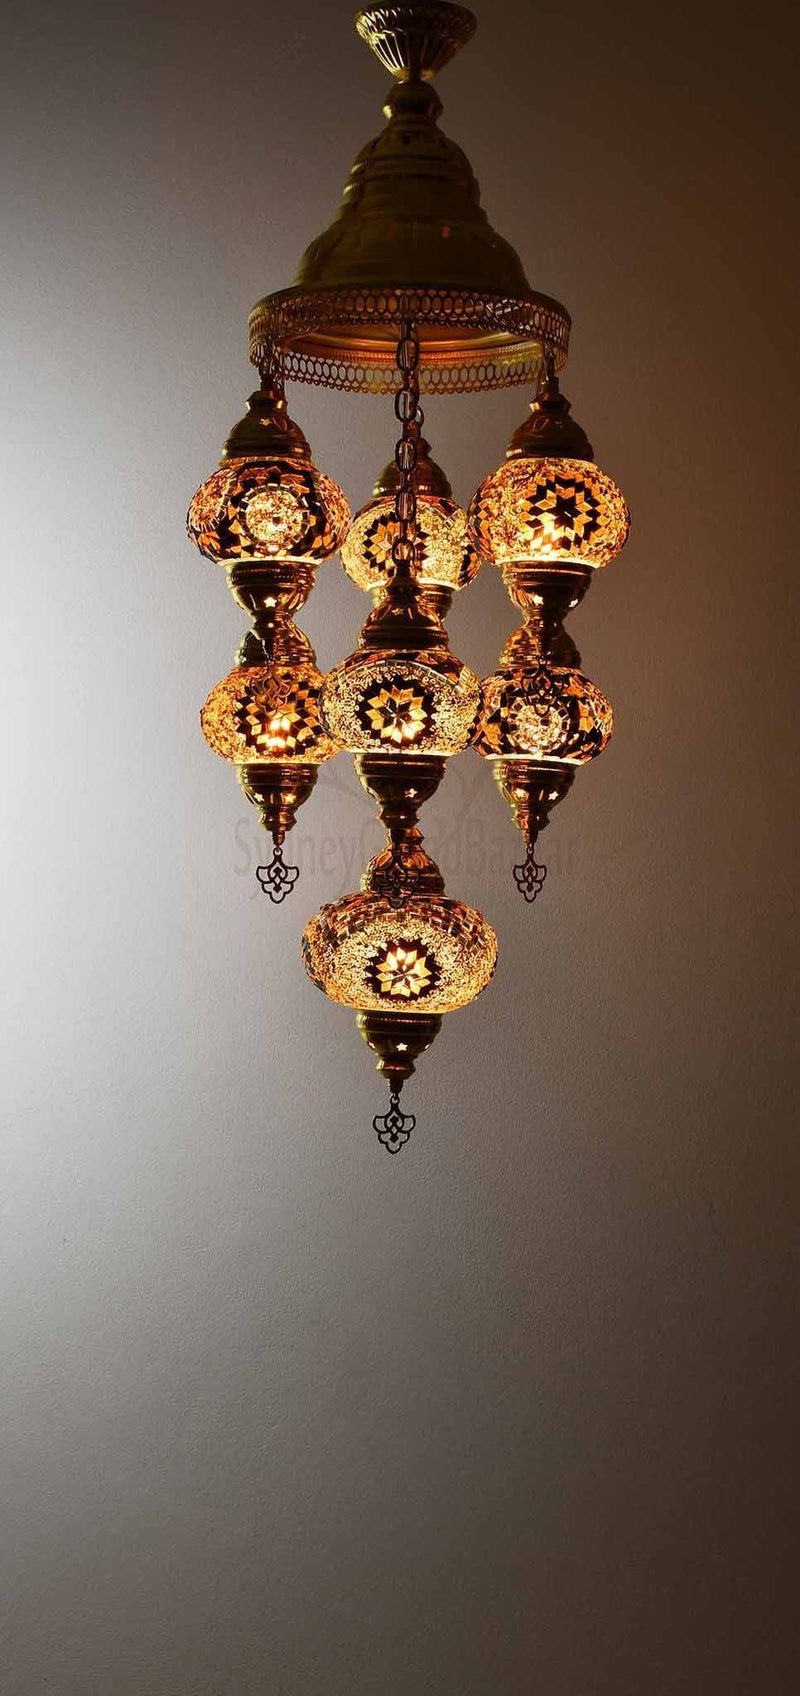 Turkish Mosaic Pendant Light 7 Globes in Gold Lighting Sydney Grand Bazaar Golden brown